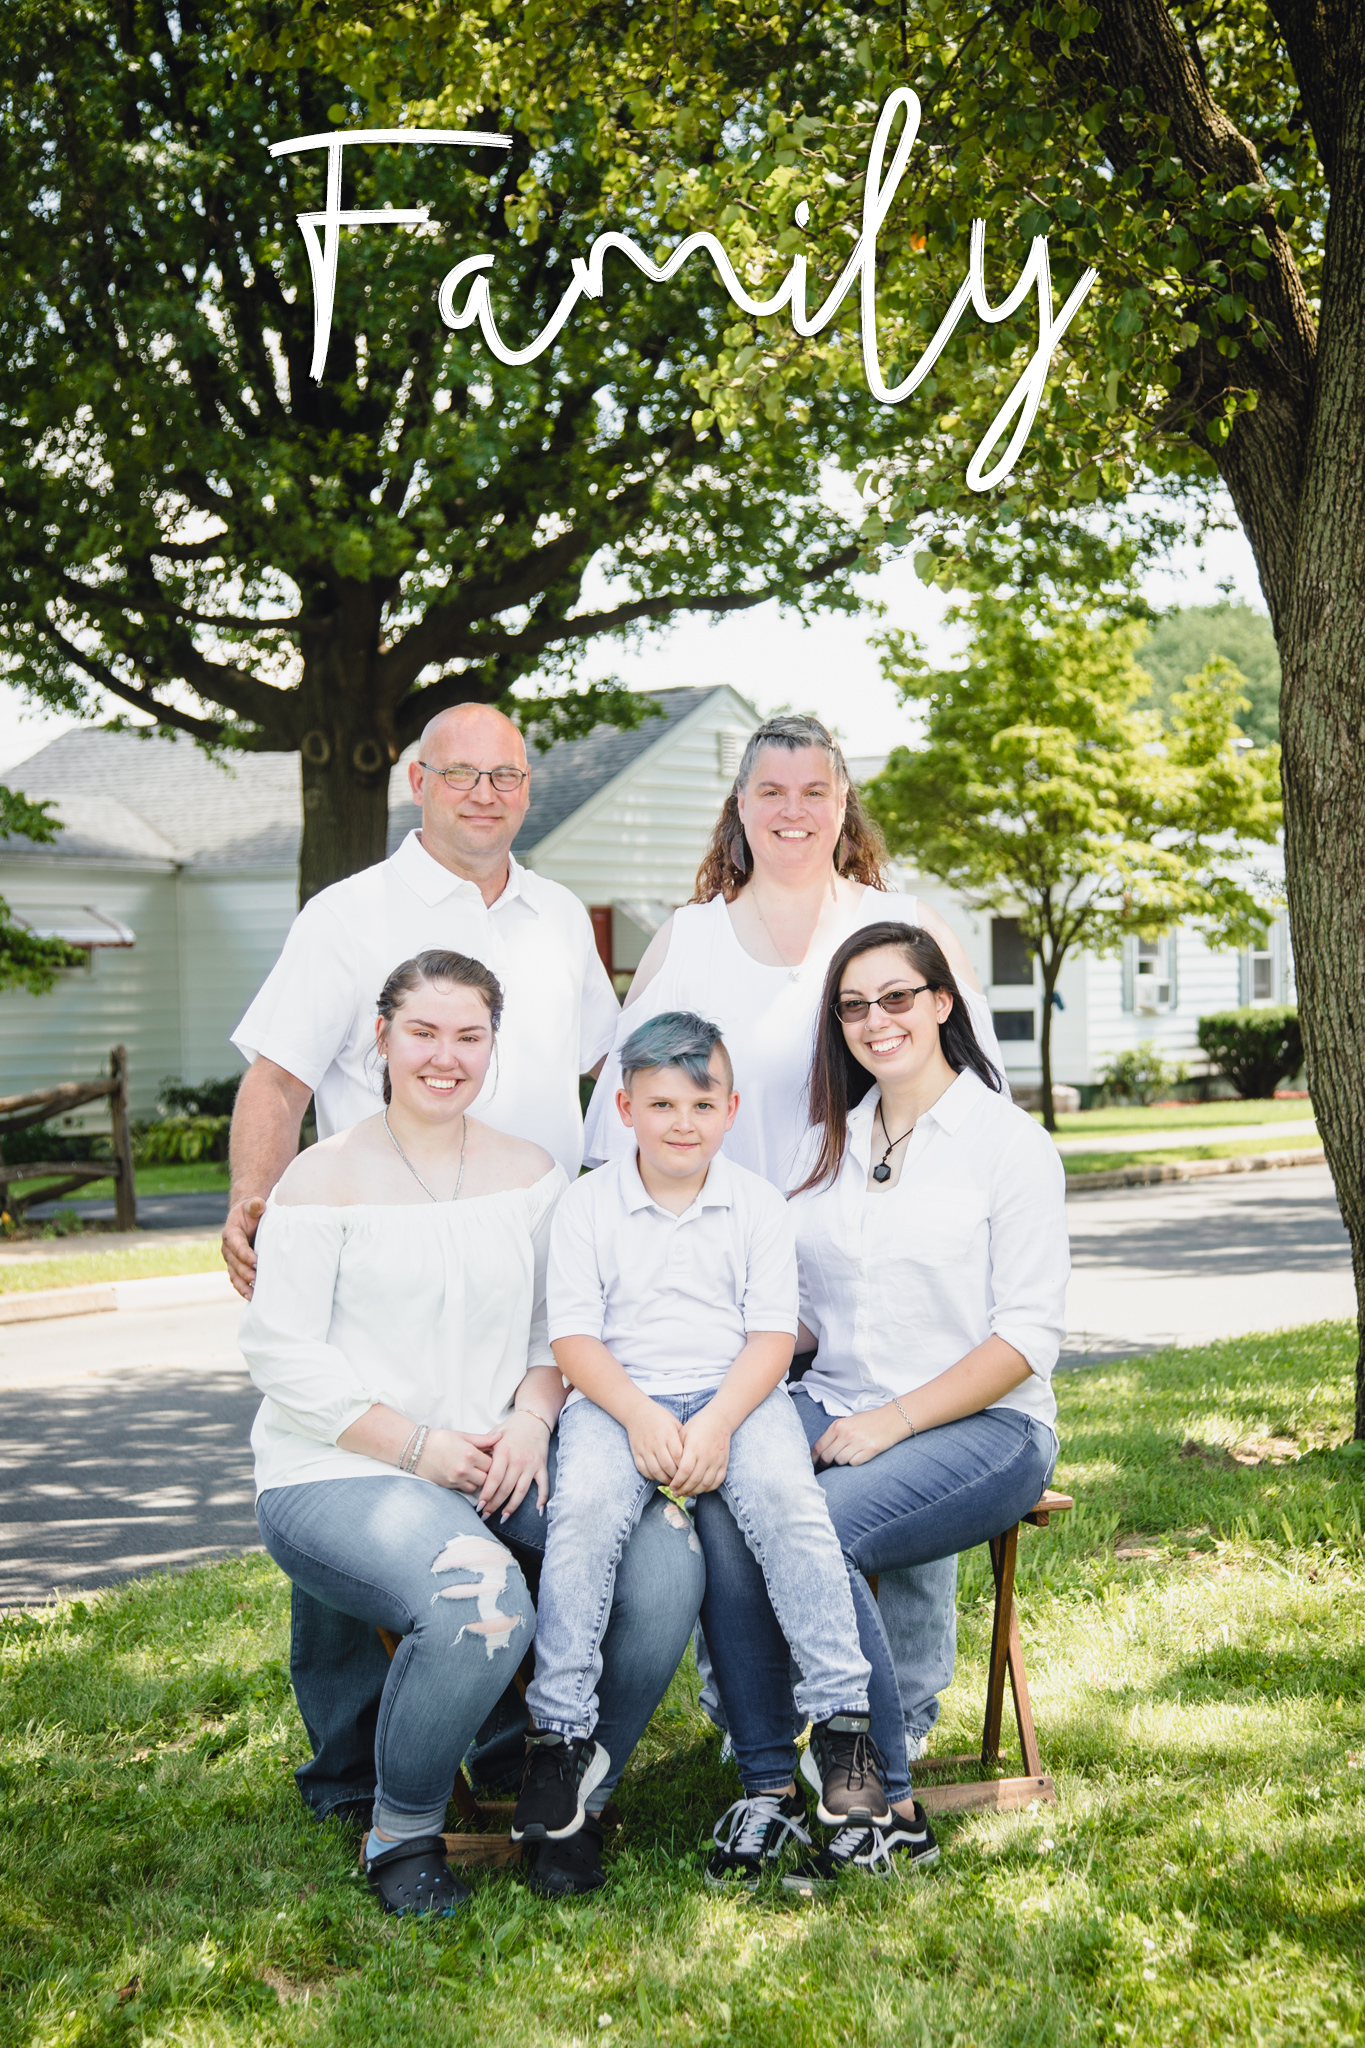 professional photos, professional portraits, family photography, family photos, family portraits, dave zerbe photography, photography services, professional photography, professional photographers